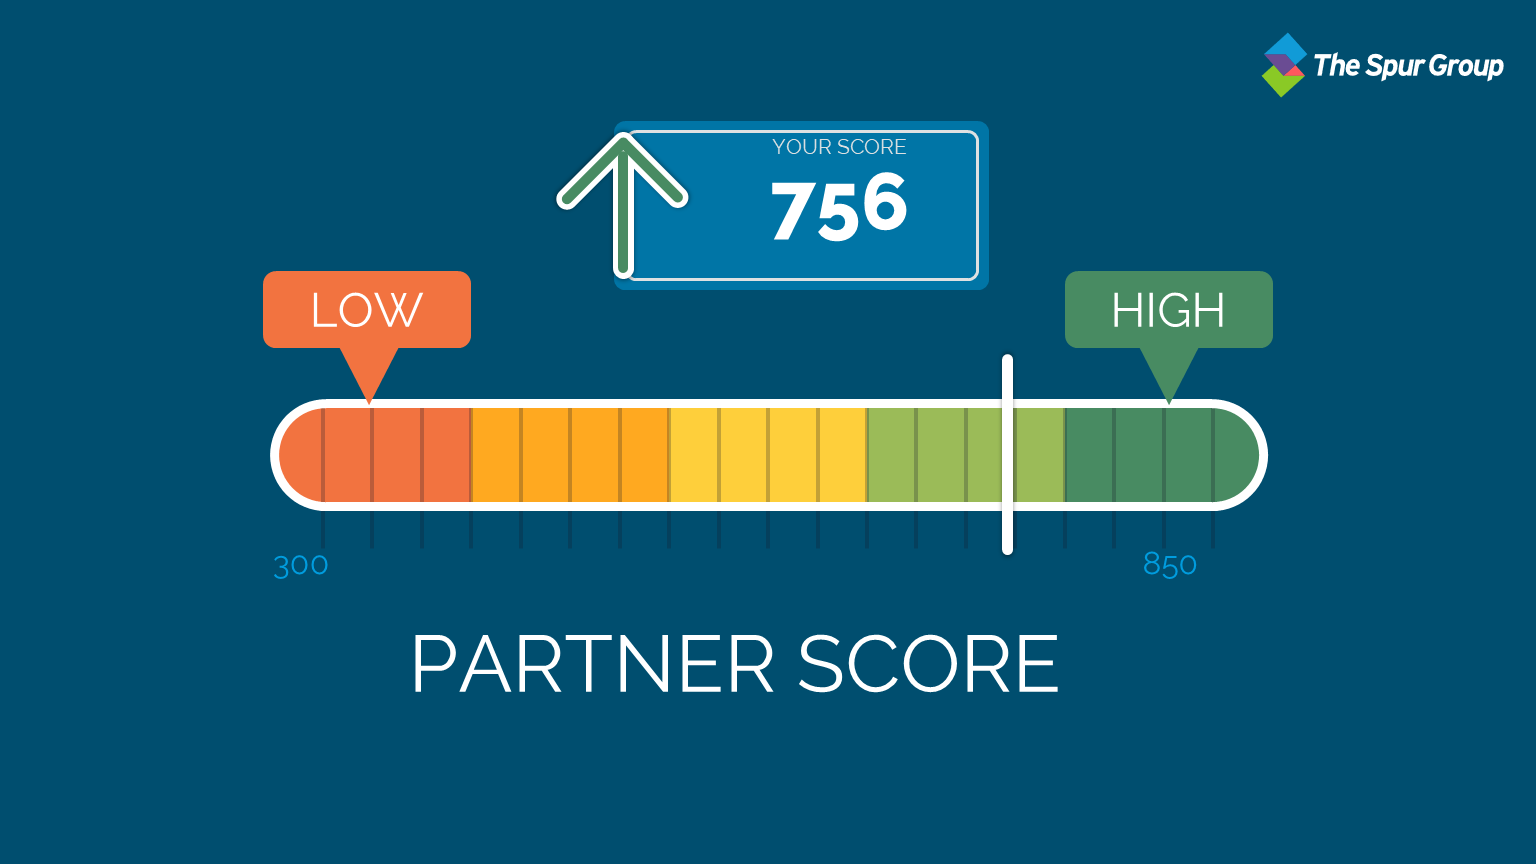 5 reasons partner scoring gives you an unsurpassed advantage Featured Image